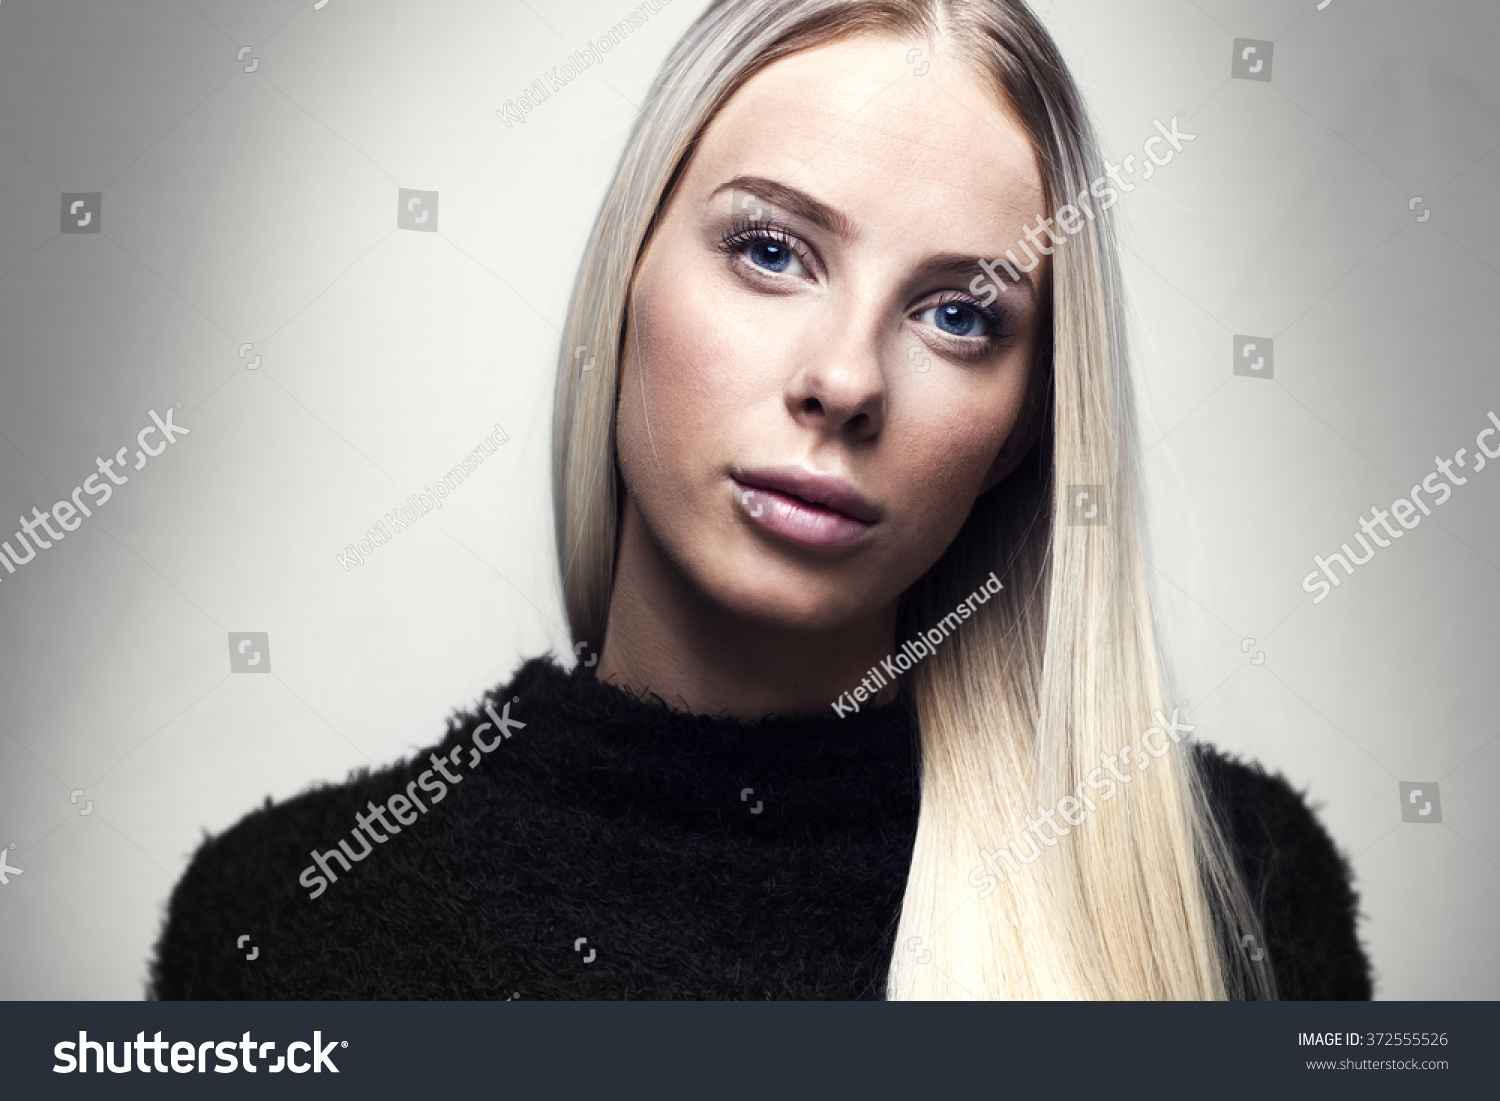 Portrait of a young blonde woman with hairy jacket